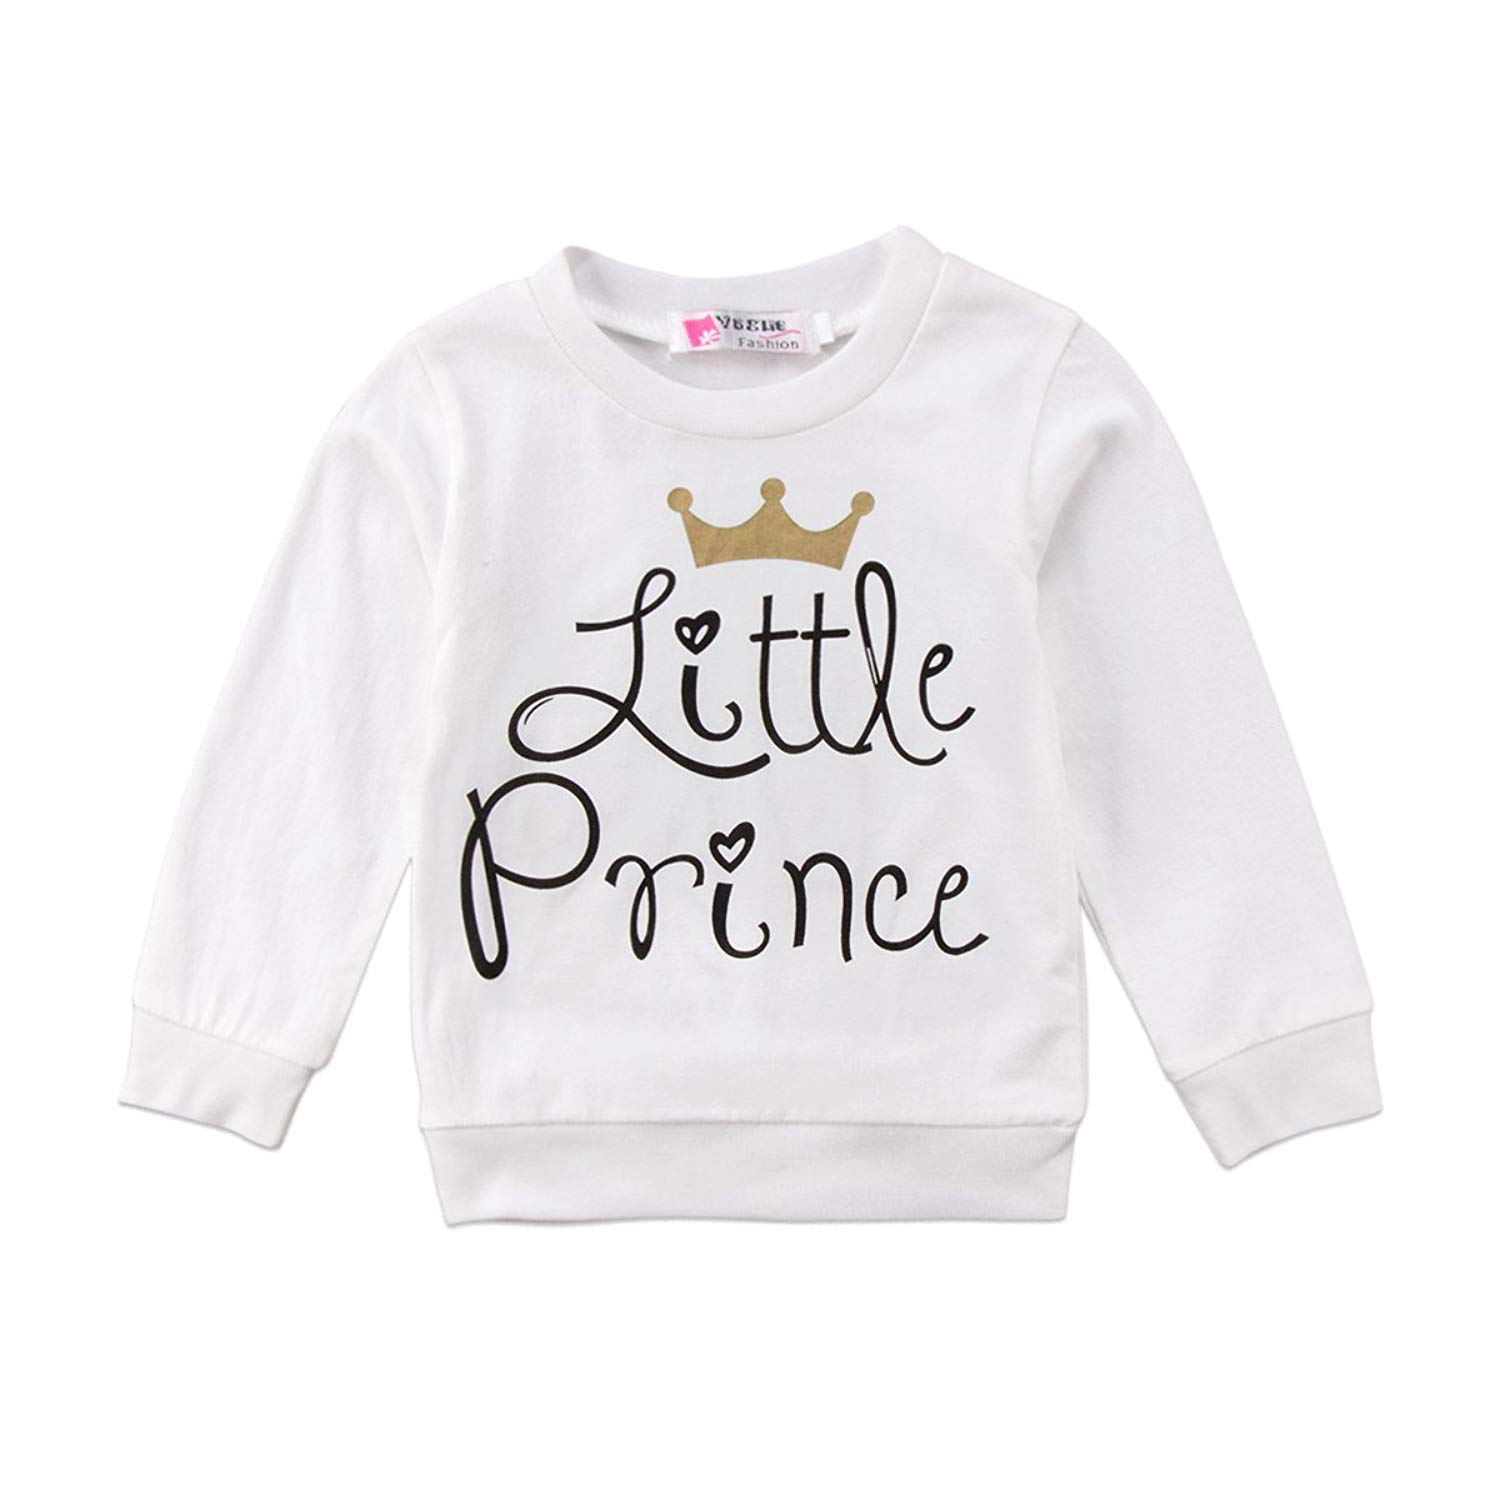 509fe230 Get Quotations · Hotwon Family Matching Clothes Mom Dad Baby Boy Girl  Hoodies Kids Long Sleeve Sweatshirt Tops